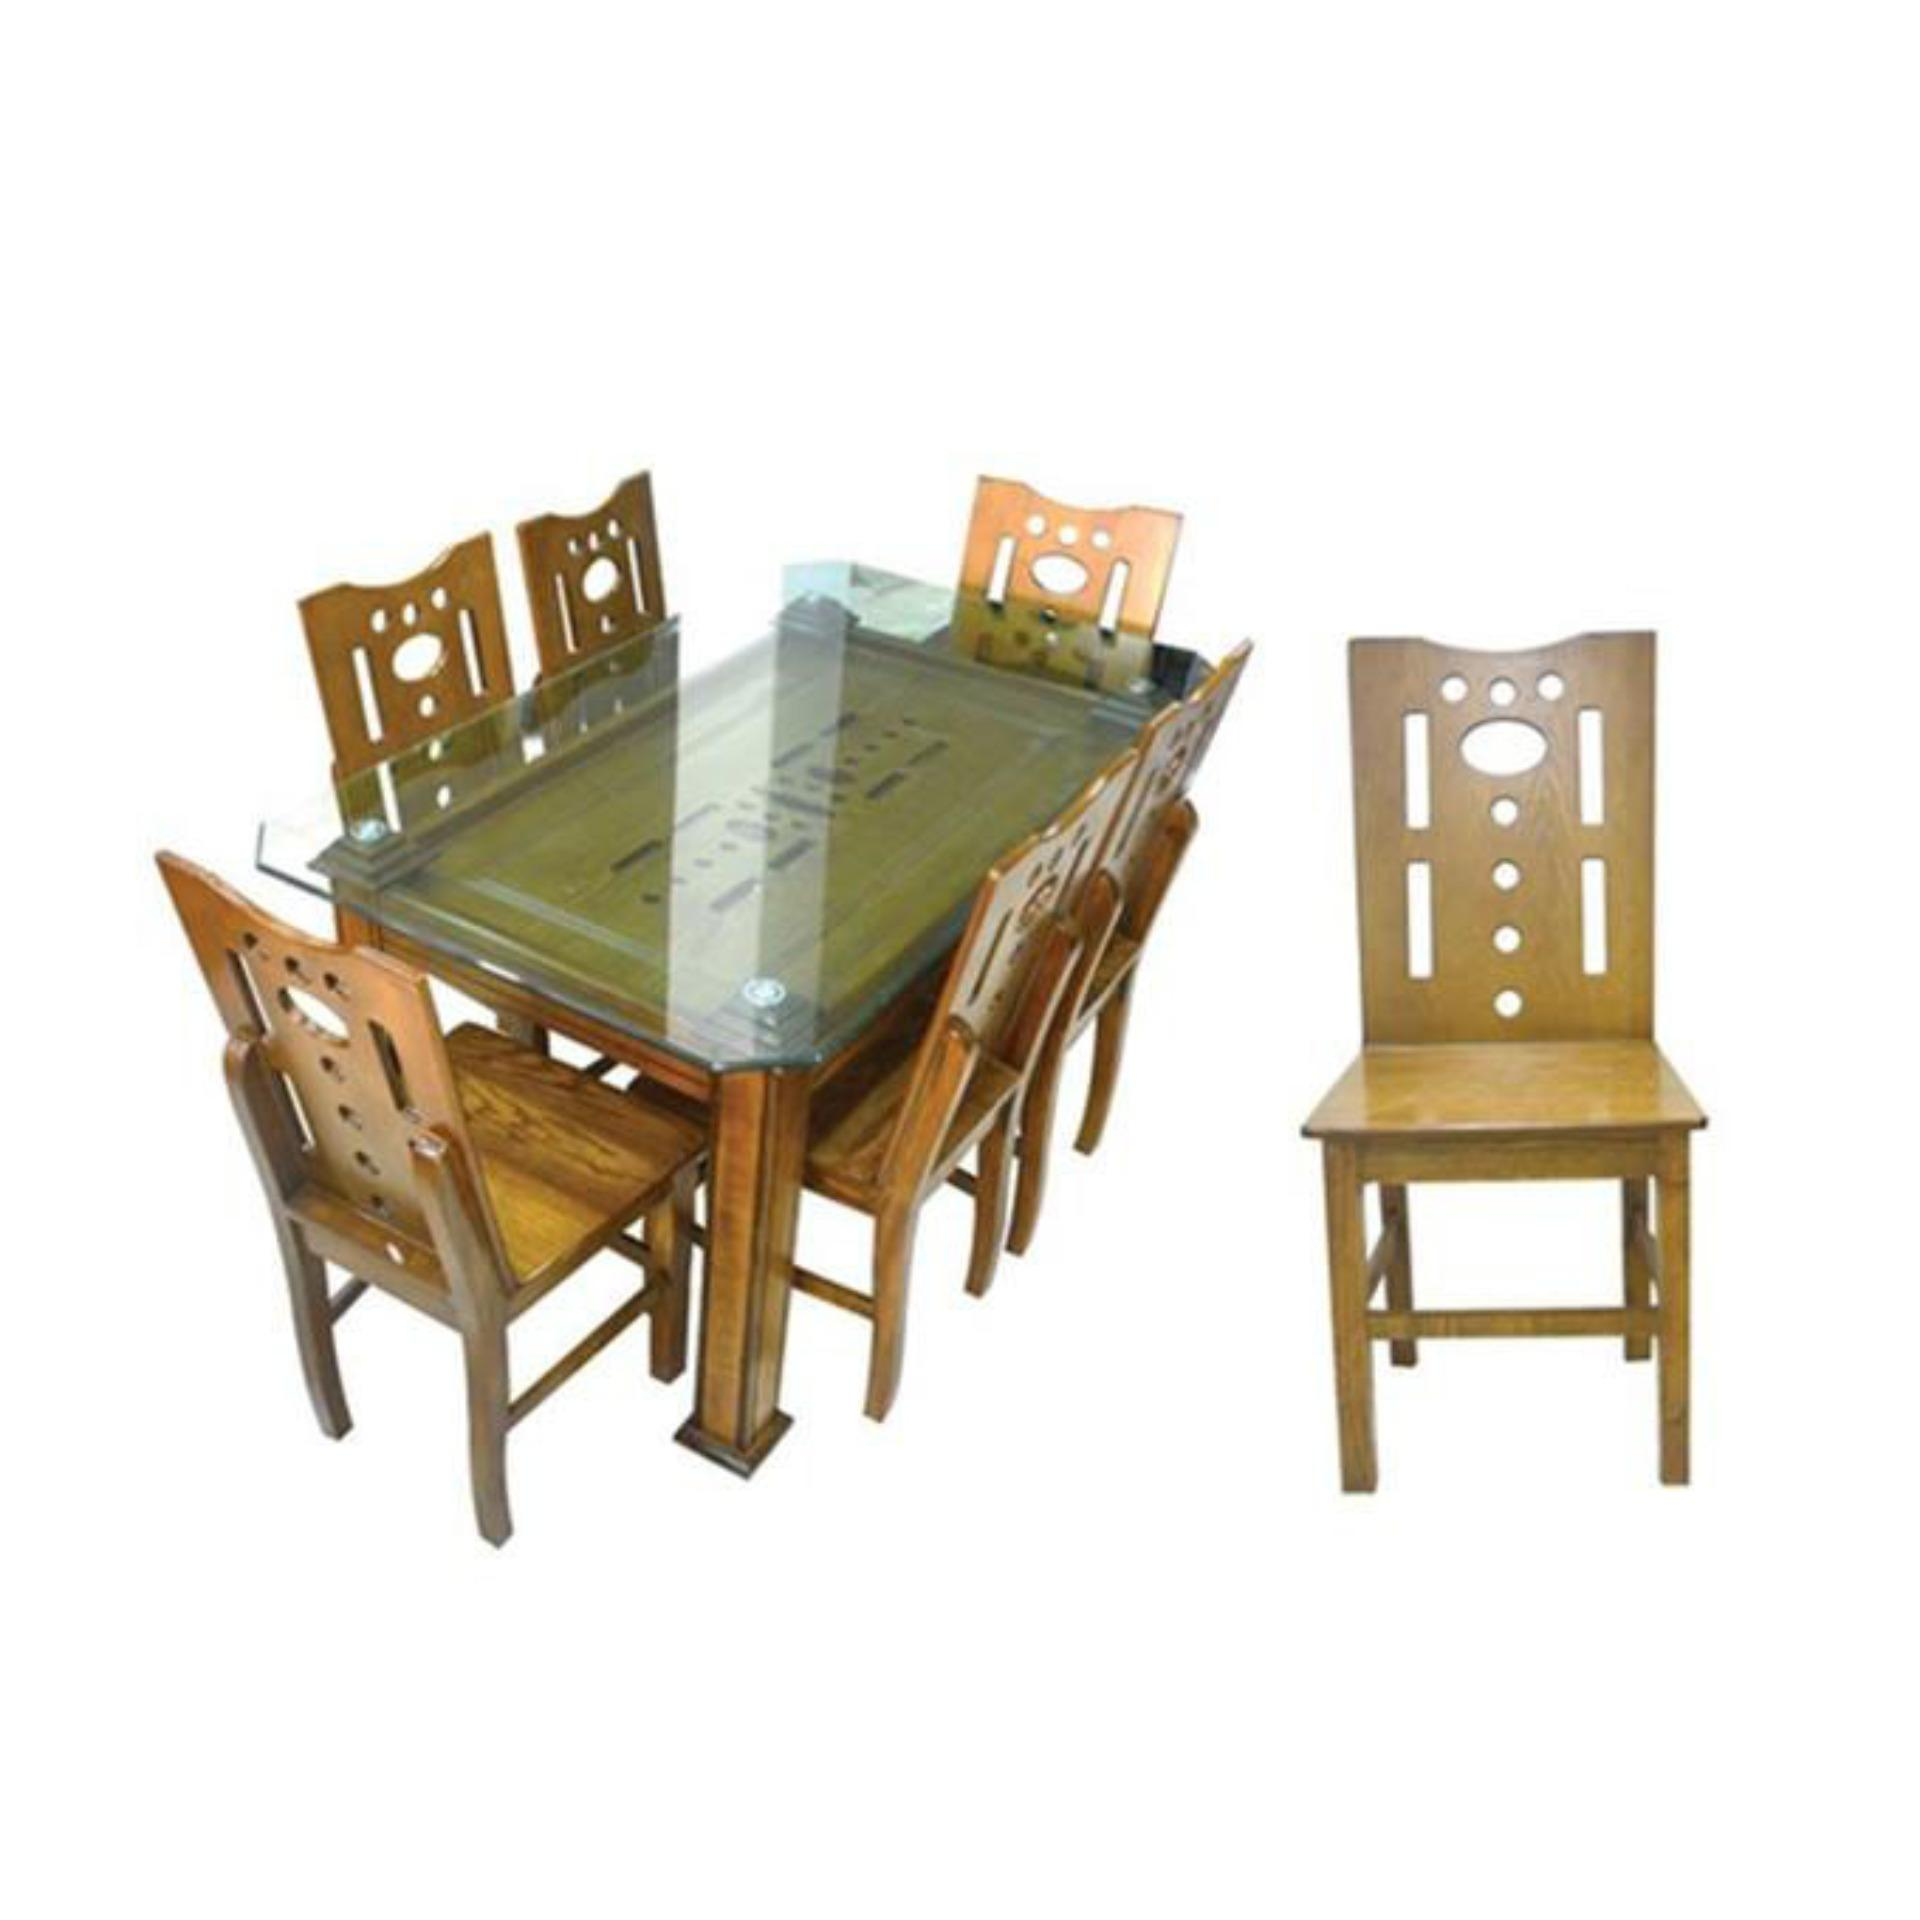 Dining Tables In Bangladesh At Best Price Online Daraz Com Bd